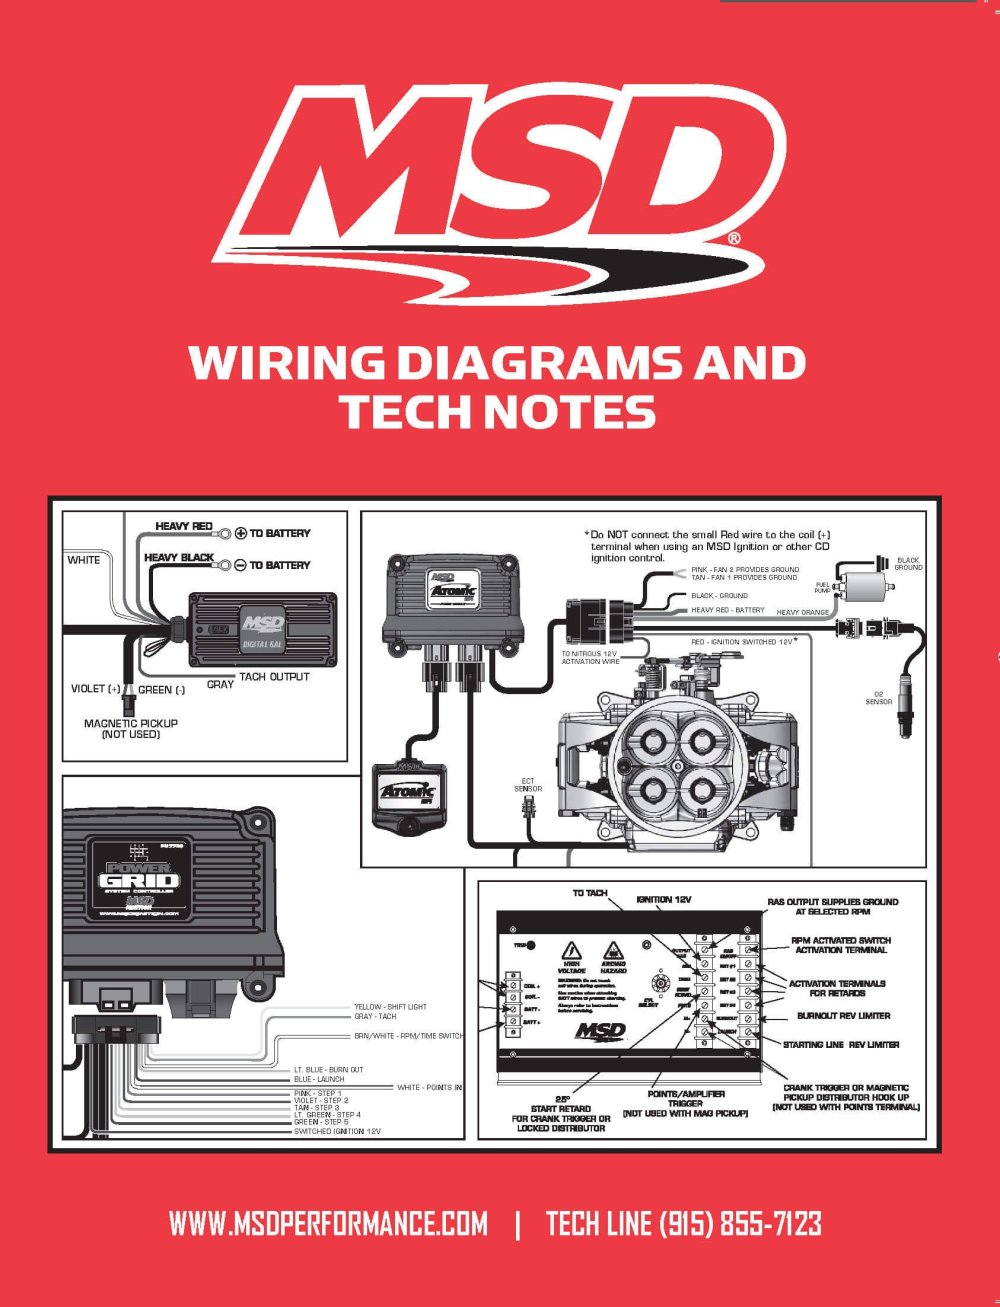 medium resolution of 9615 wiring diagrams and tech notes image